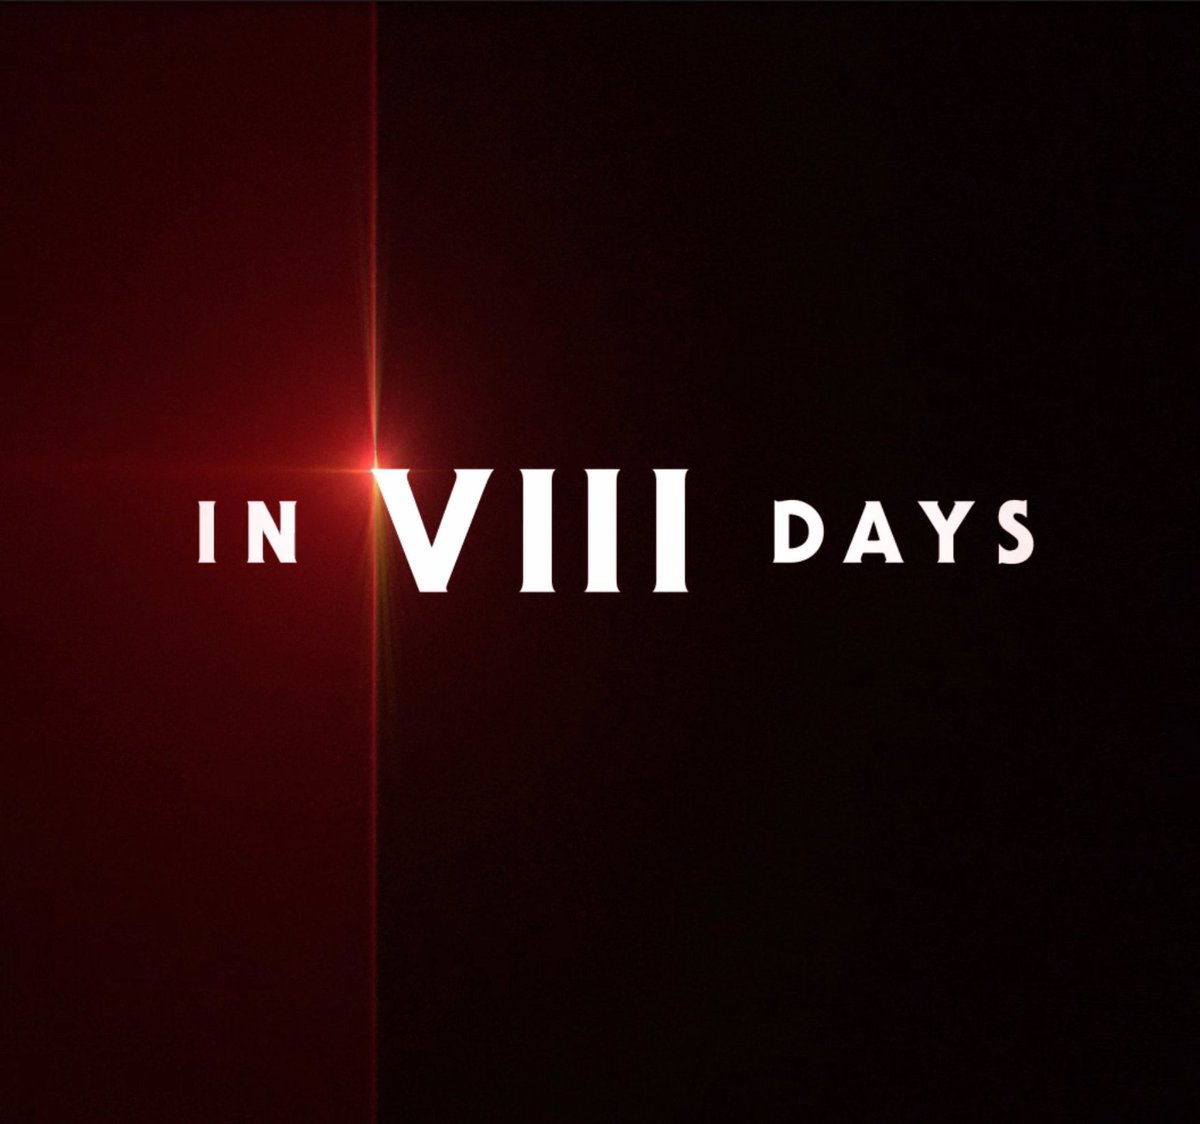 In VIII days, see Star Wars: #TheLastJedi.  Get tickets now: https://t.co/6vE5KUSv1f